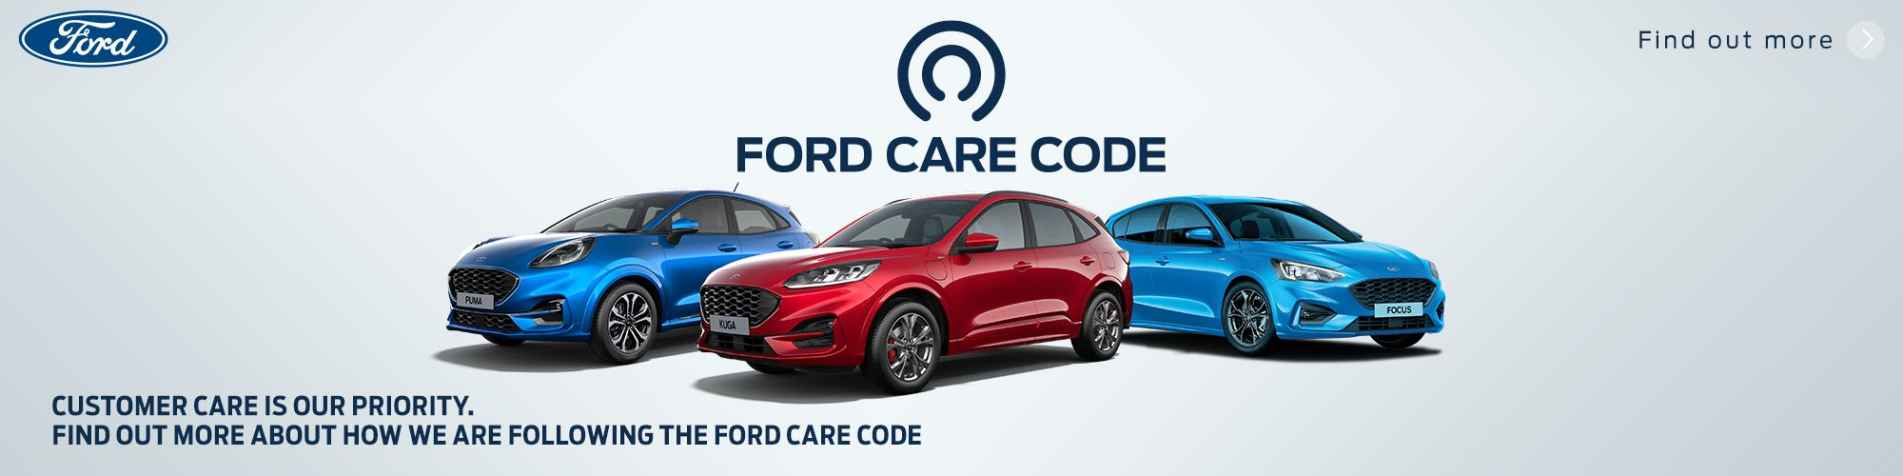 Ford Care Code Banner